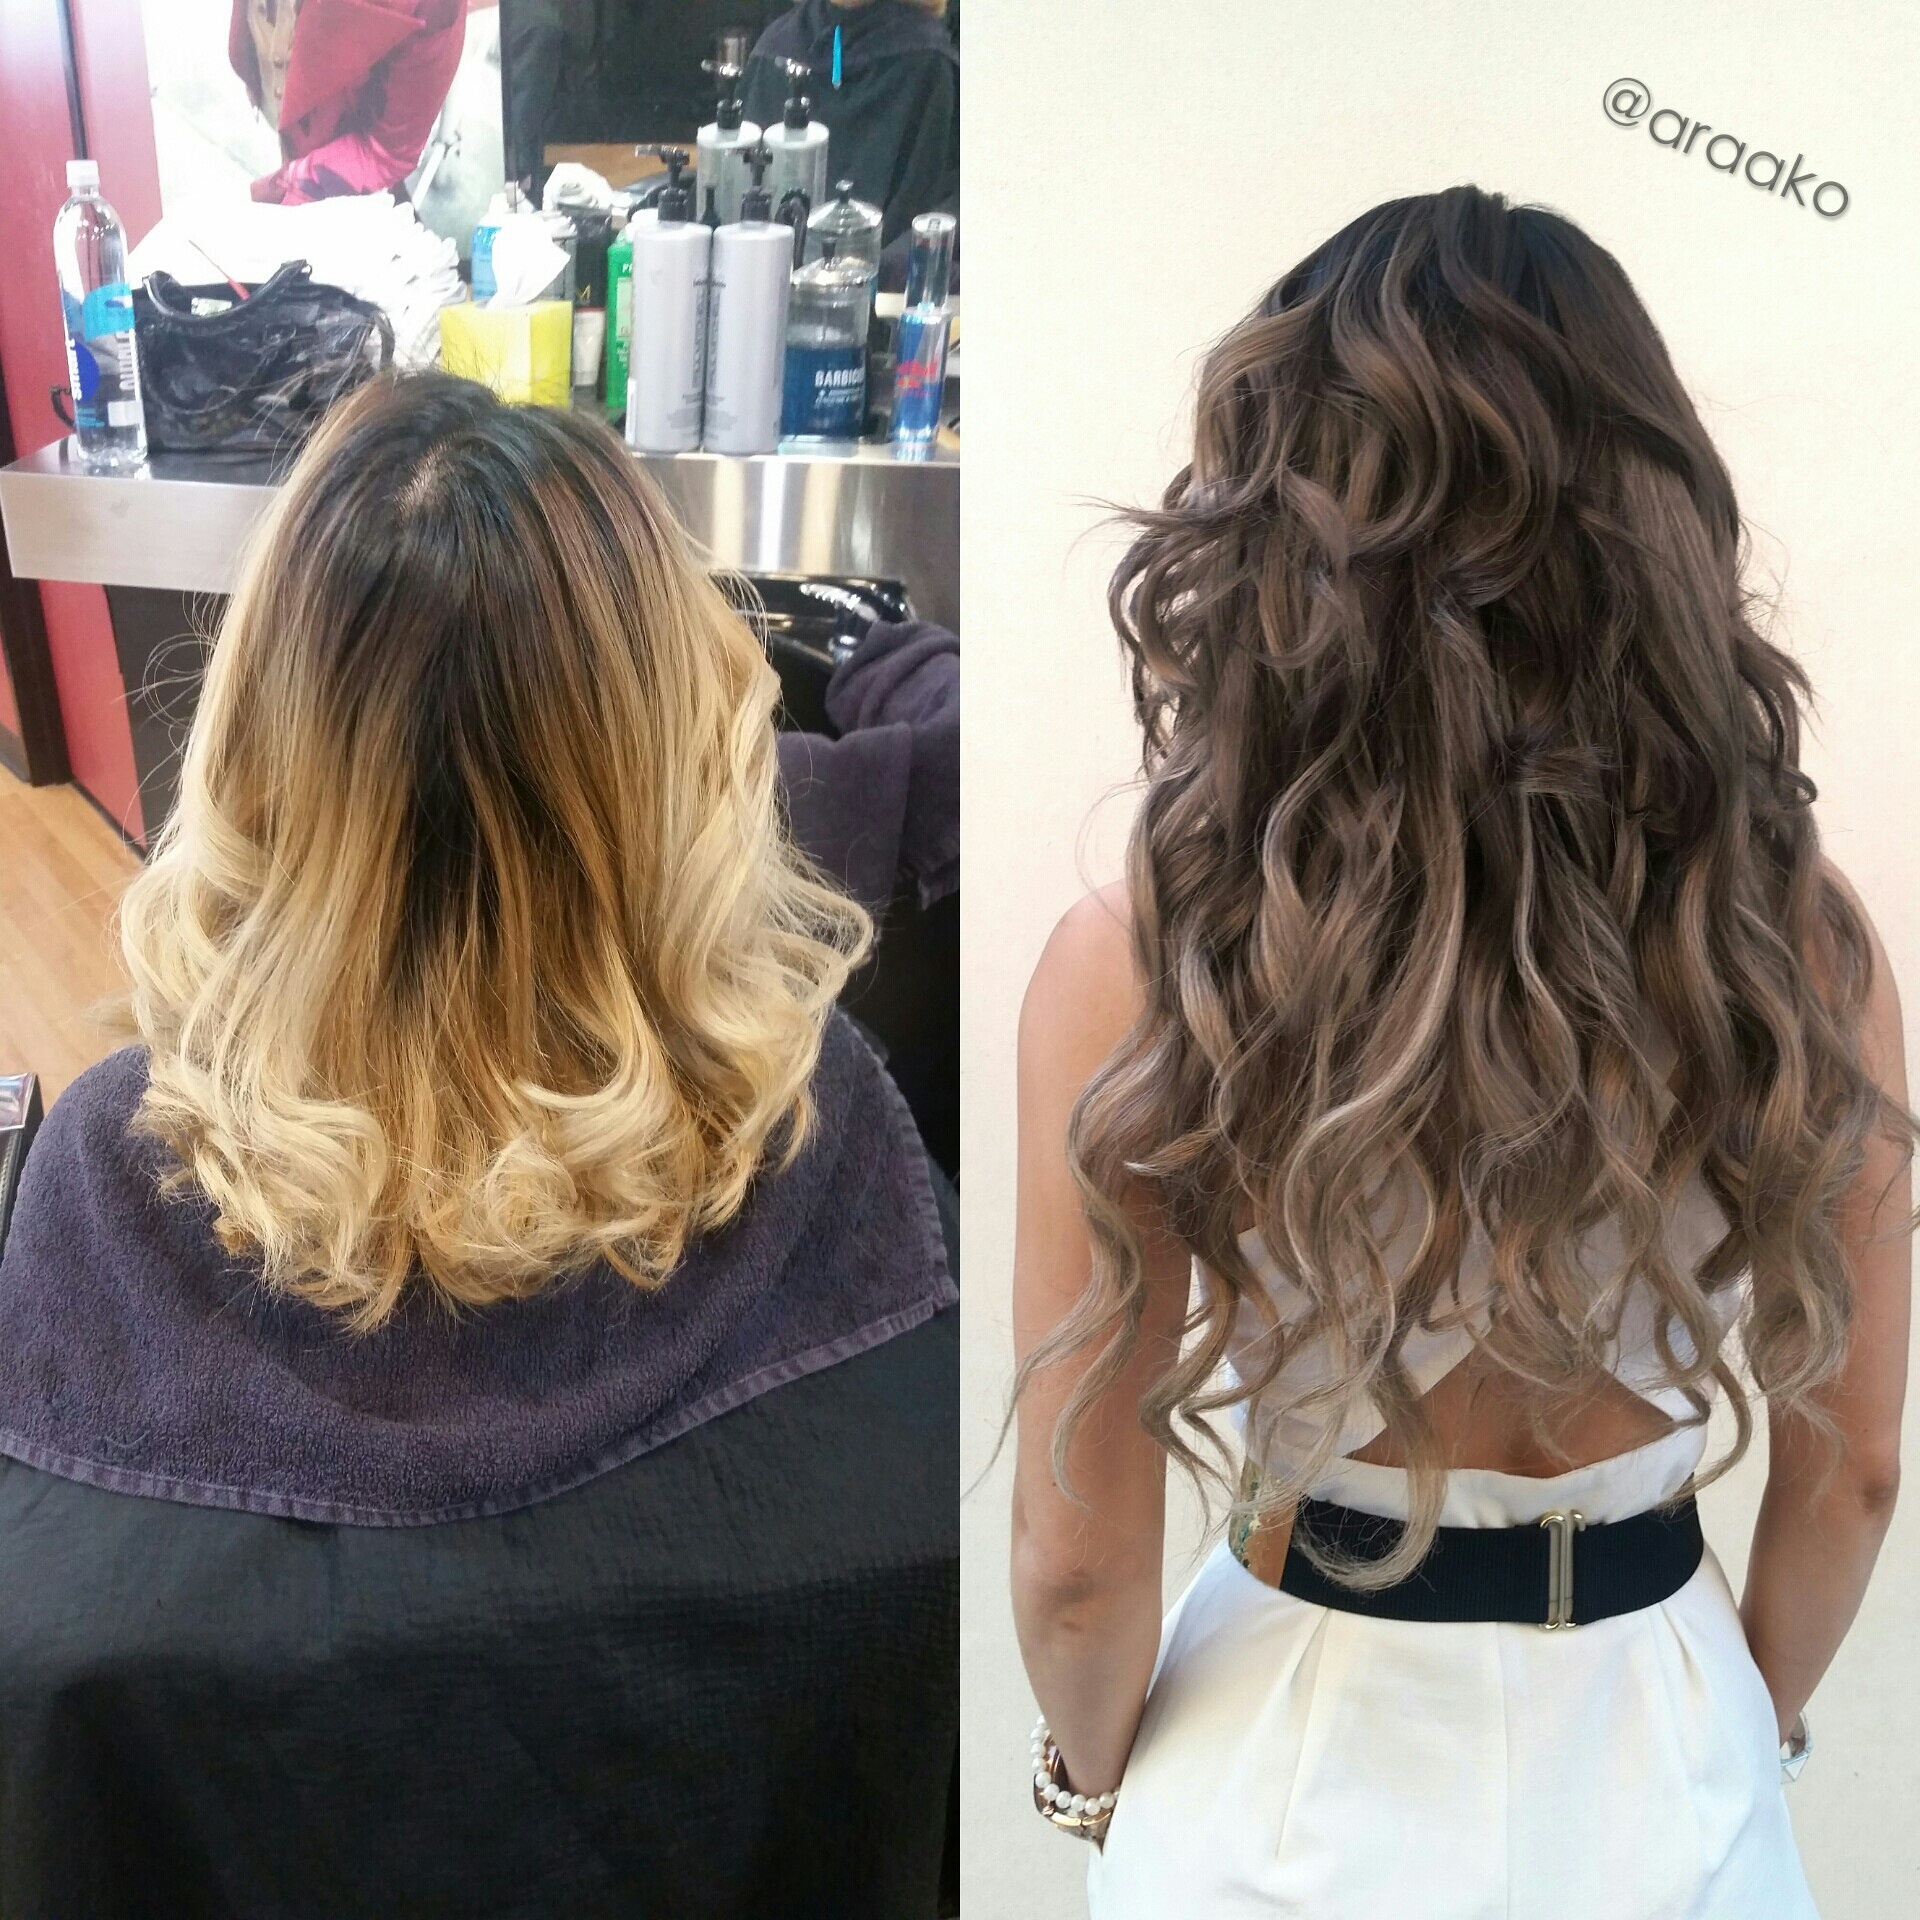 TRANSFORMATION: Date Night Hair